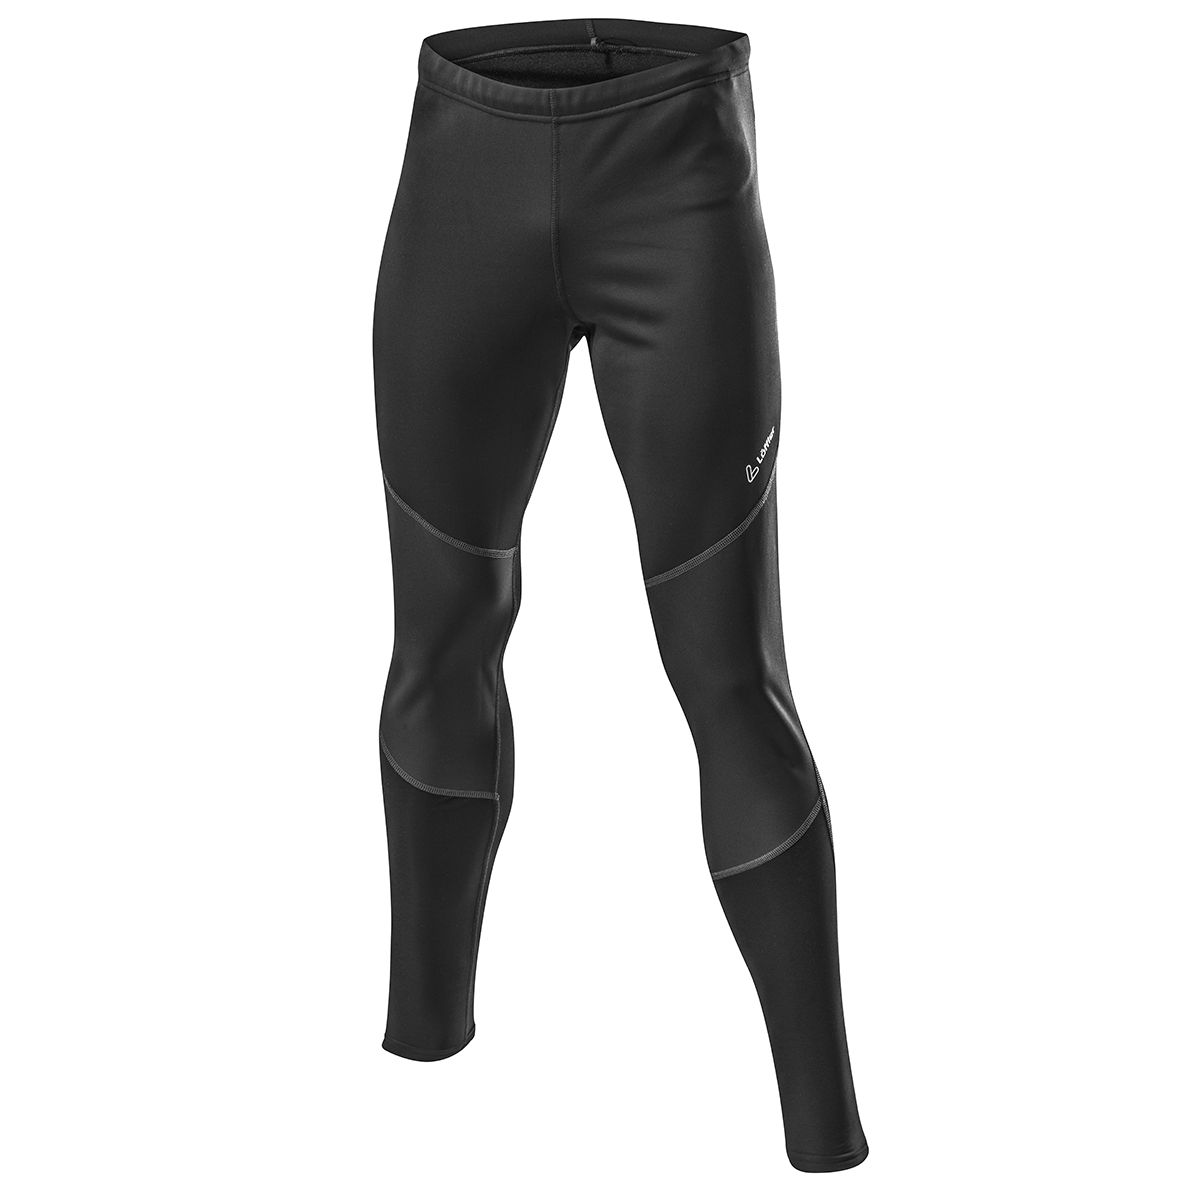 HR. TIGHTS WS SOFTSHELL WARM Thermo-Tights